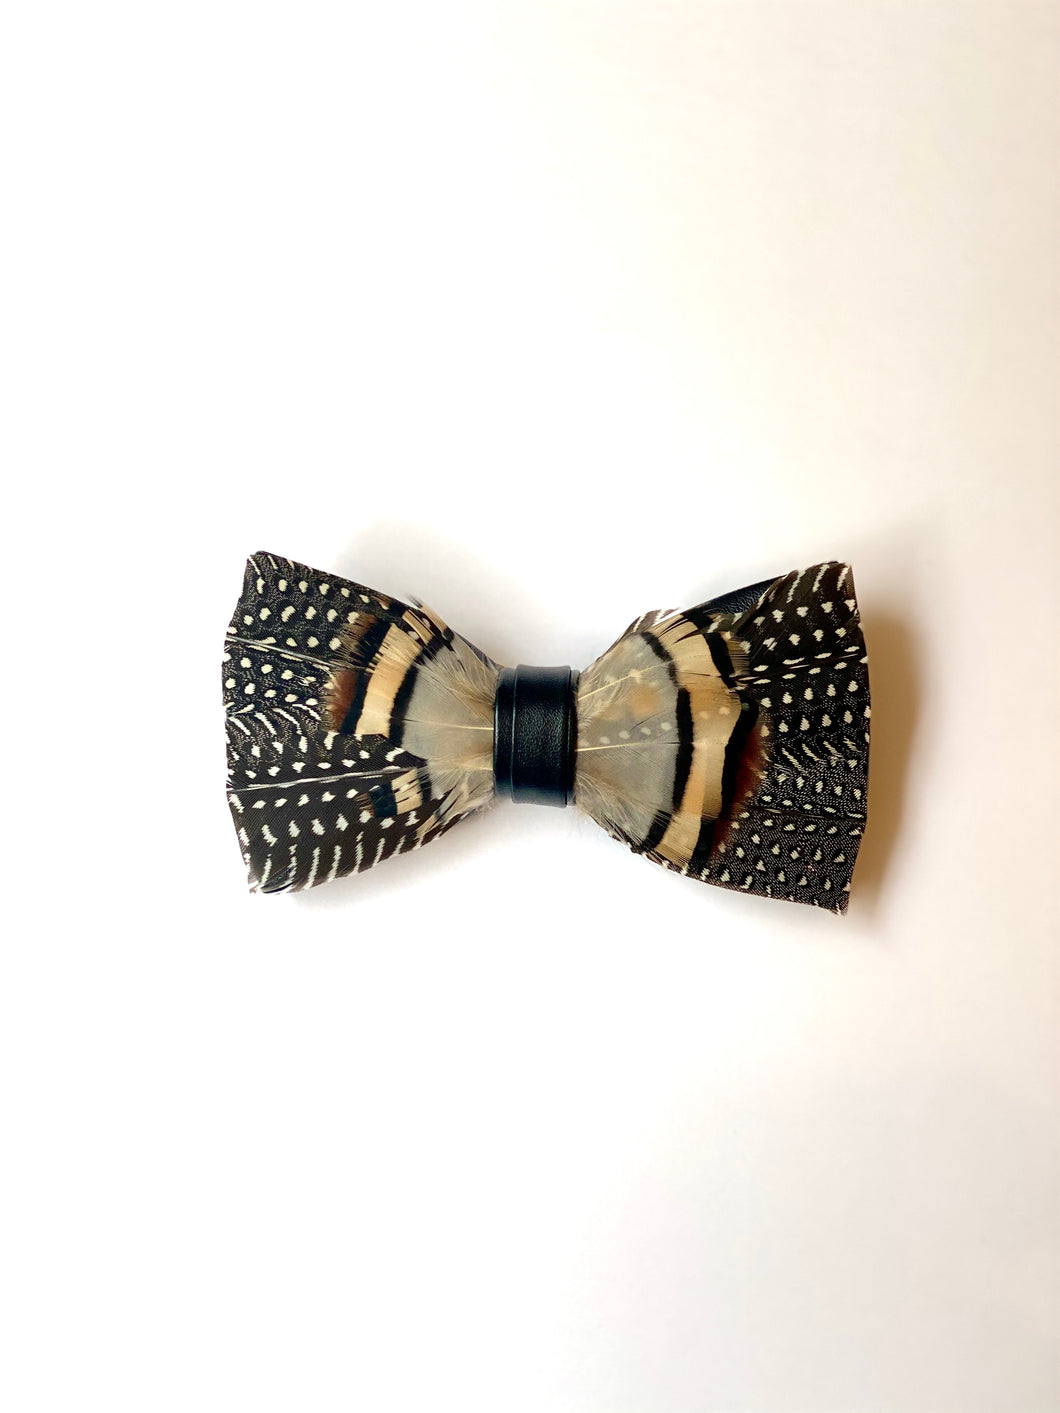 No. 2 Feather Bow Tie